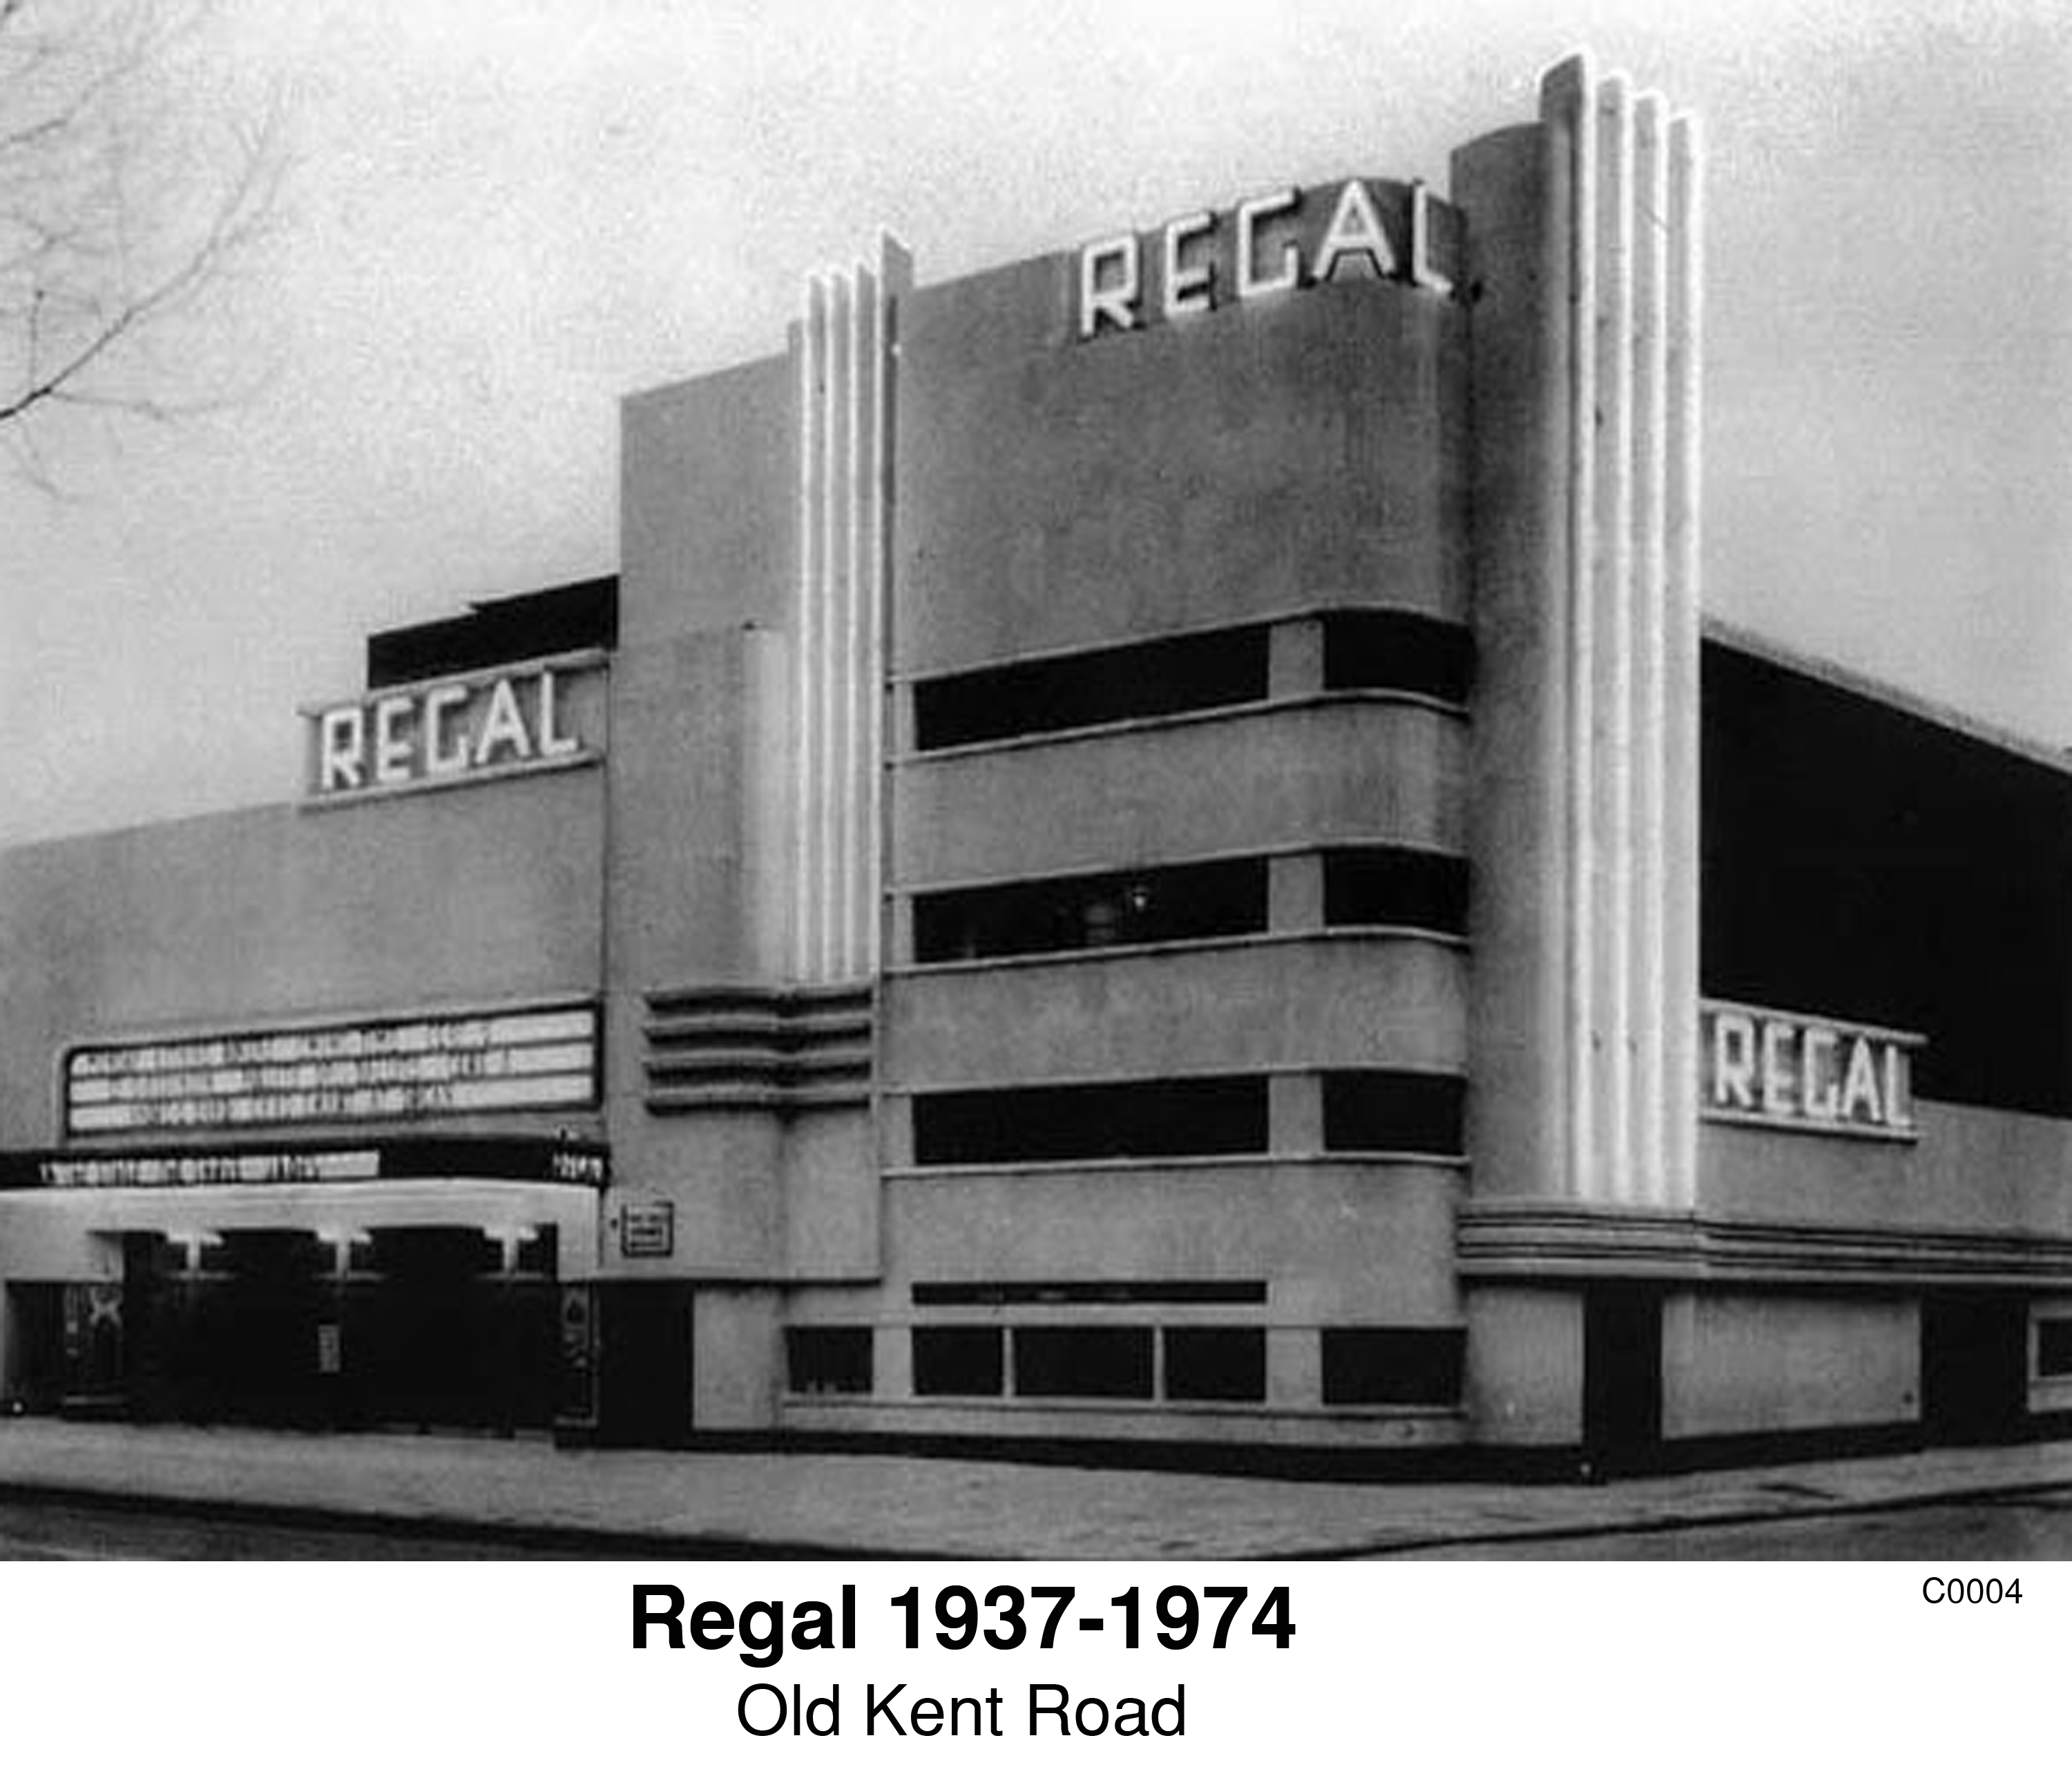 C0004 regal old kent road 1937-1974.jpg